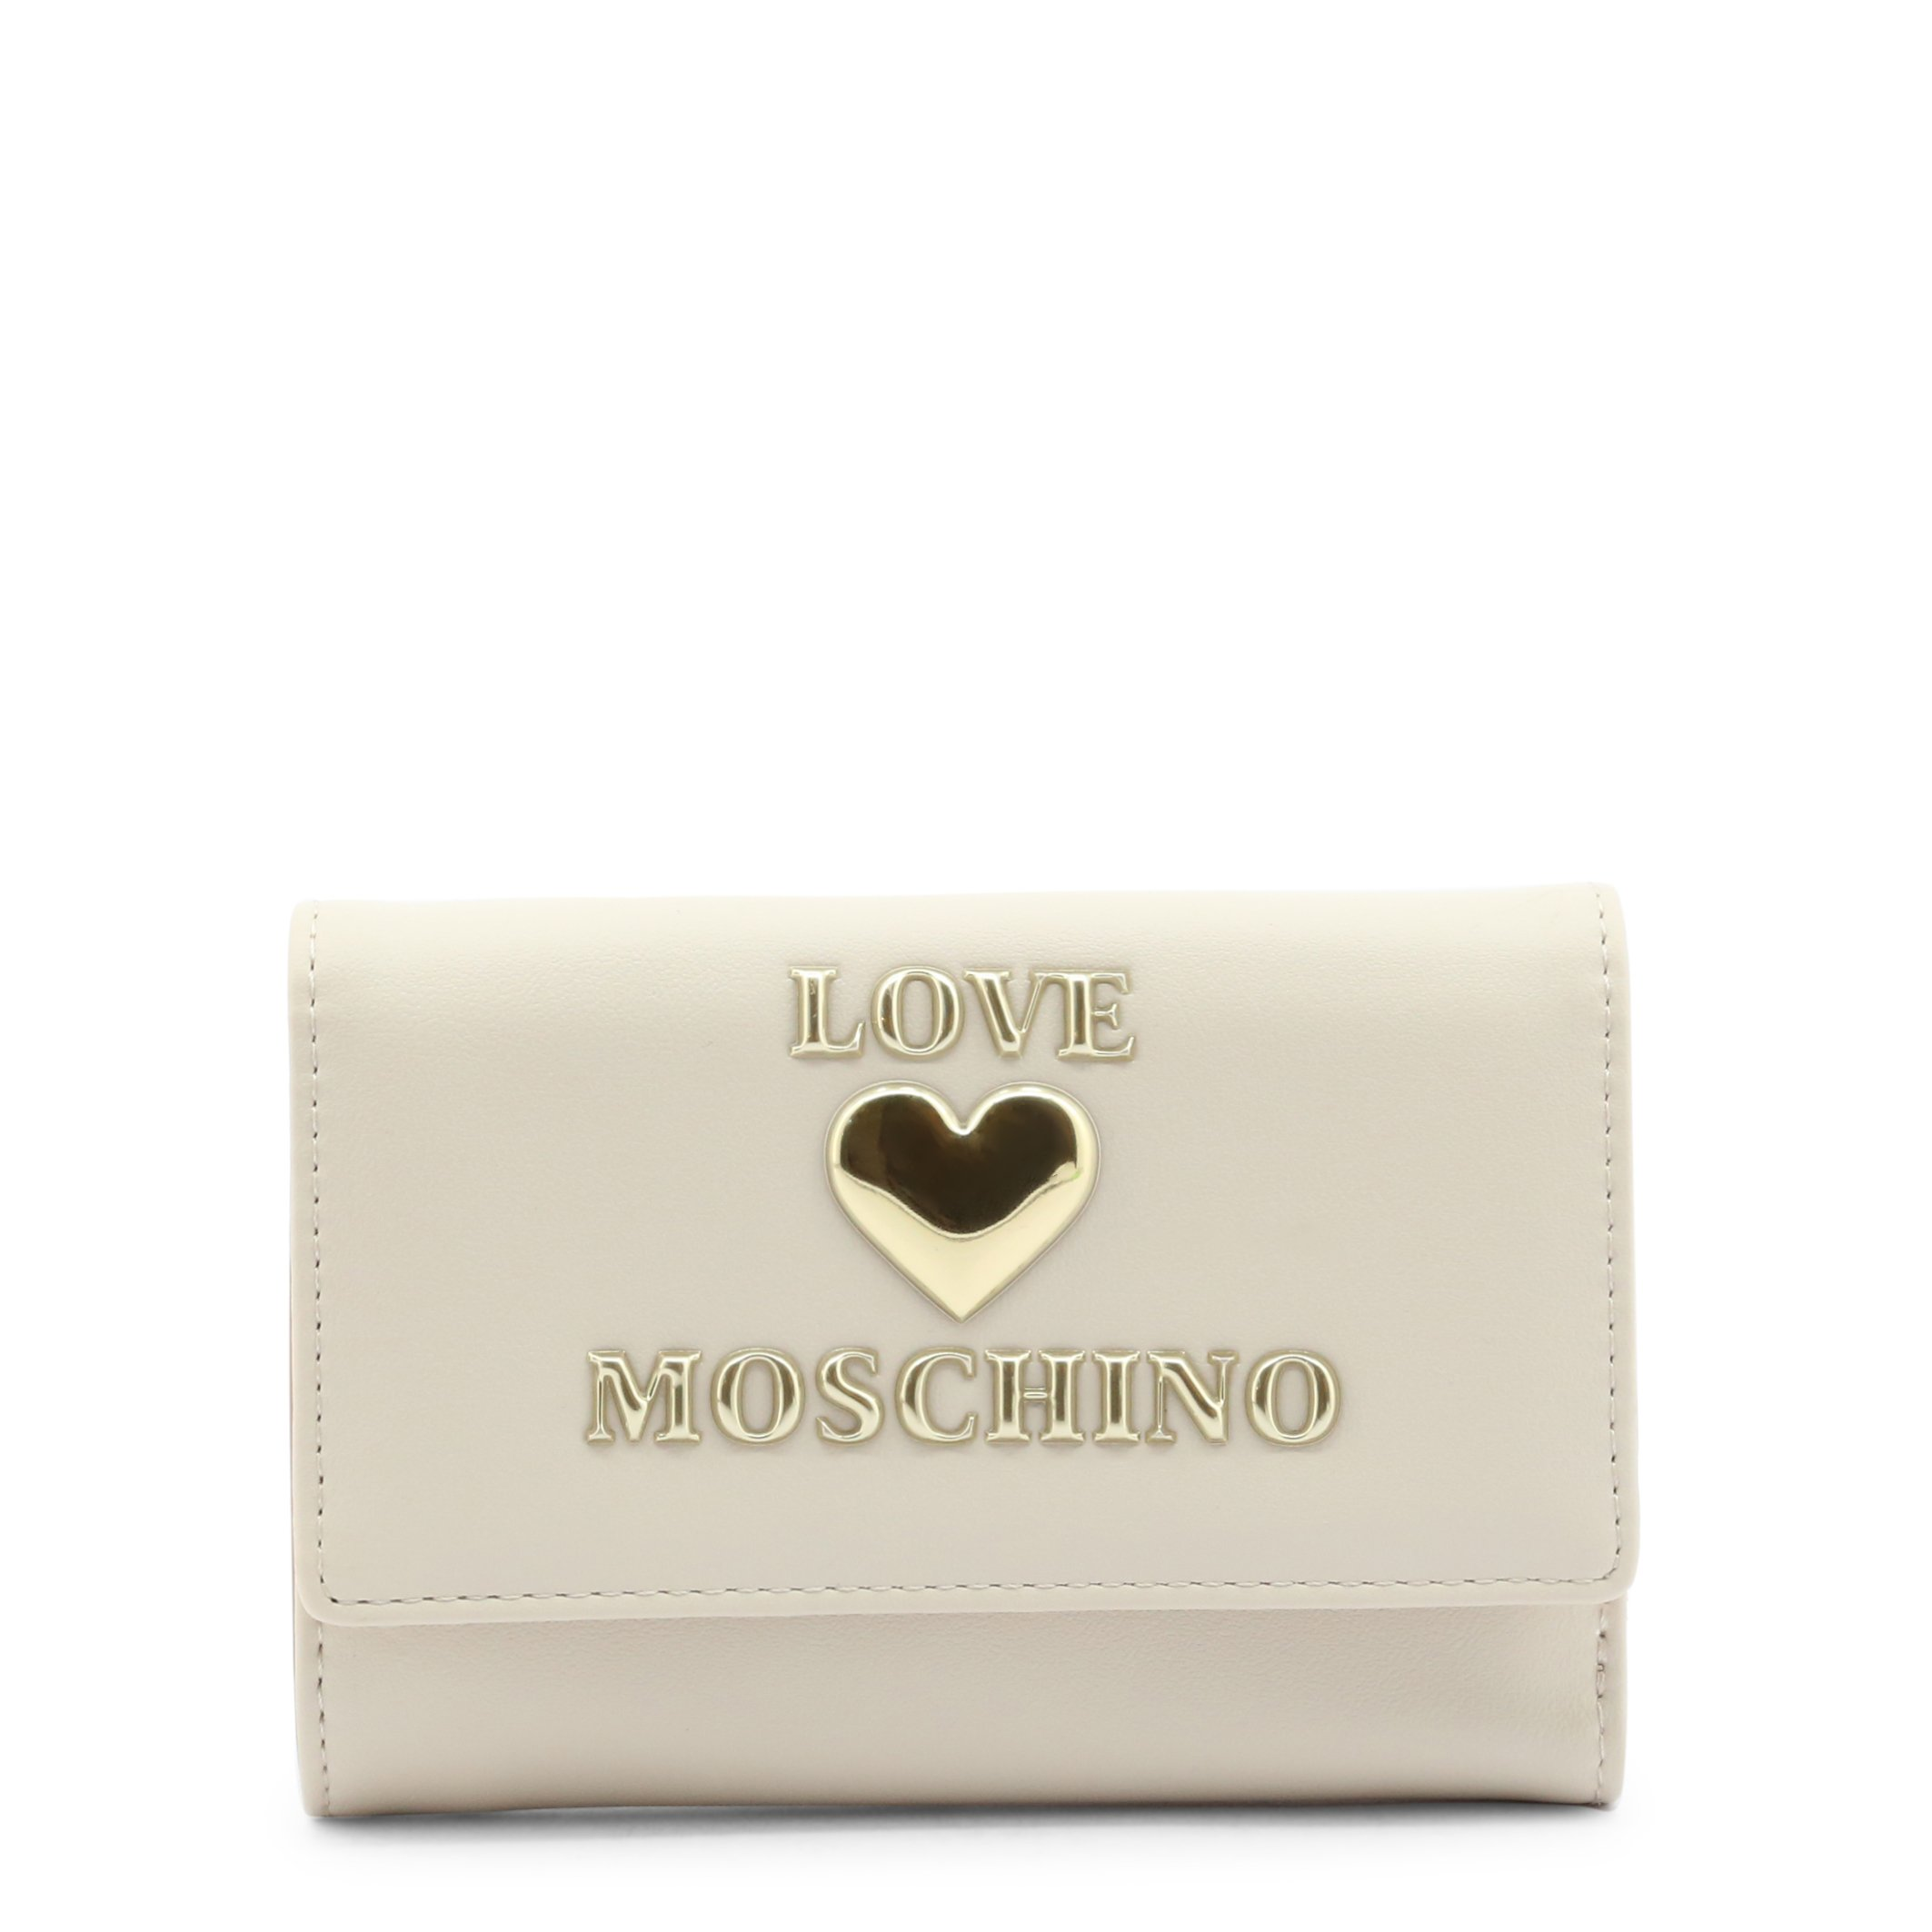 Love Moschino Women's Wallet Various Colours JC5639PP1DLF0 - white NOSIZE